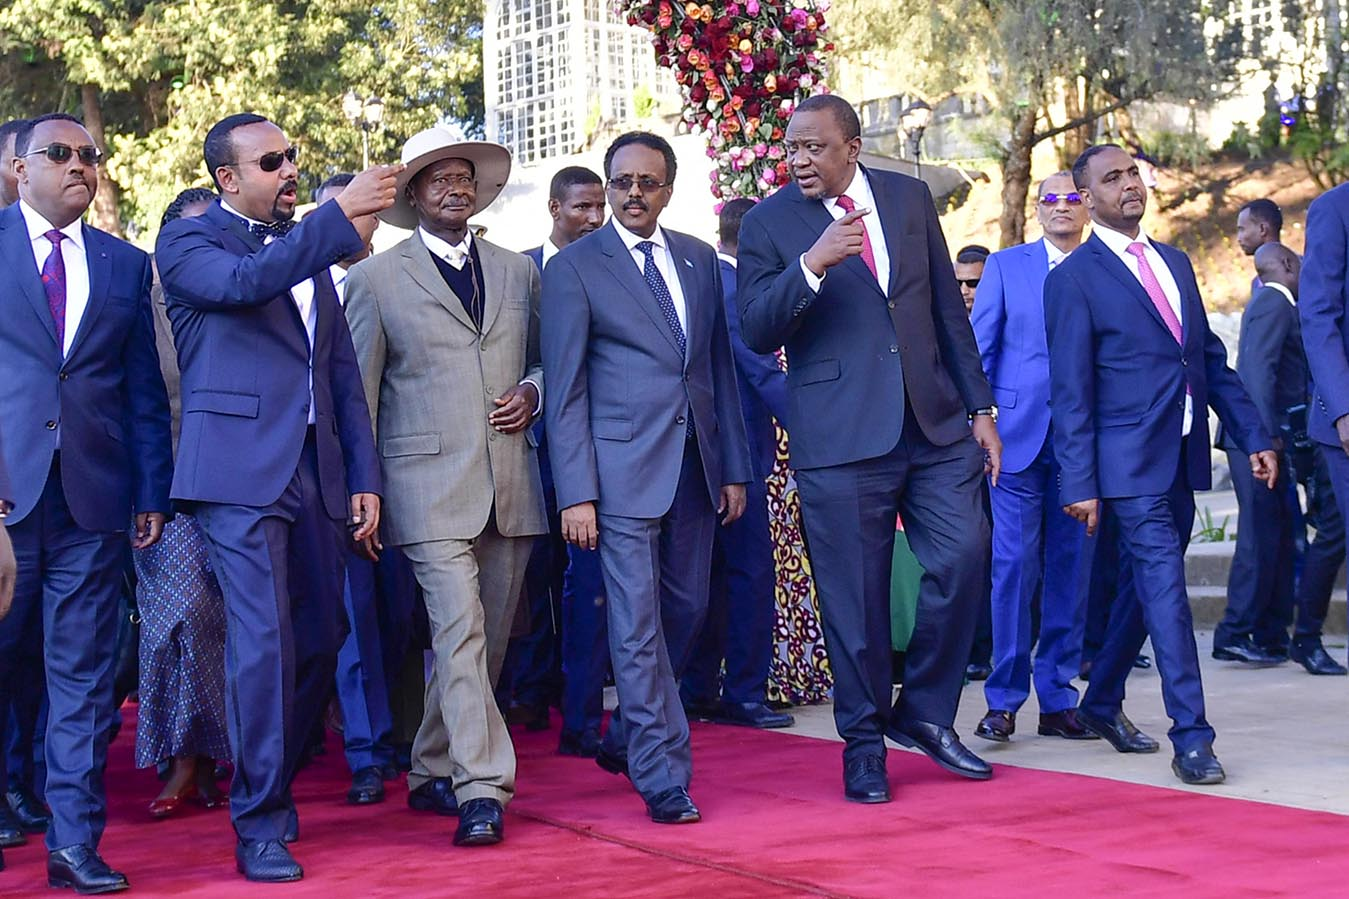 Addis Ababa - Museveni arrives for the Inauguration of the Unity Park